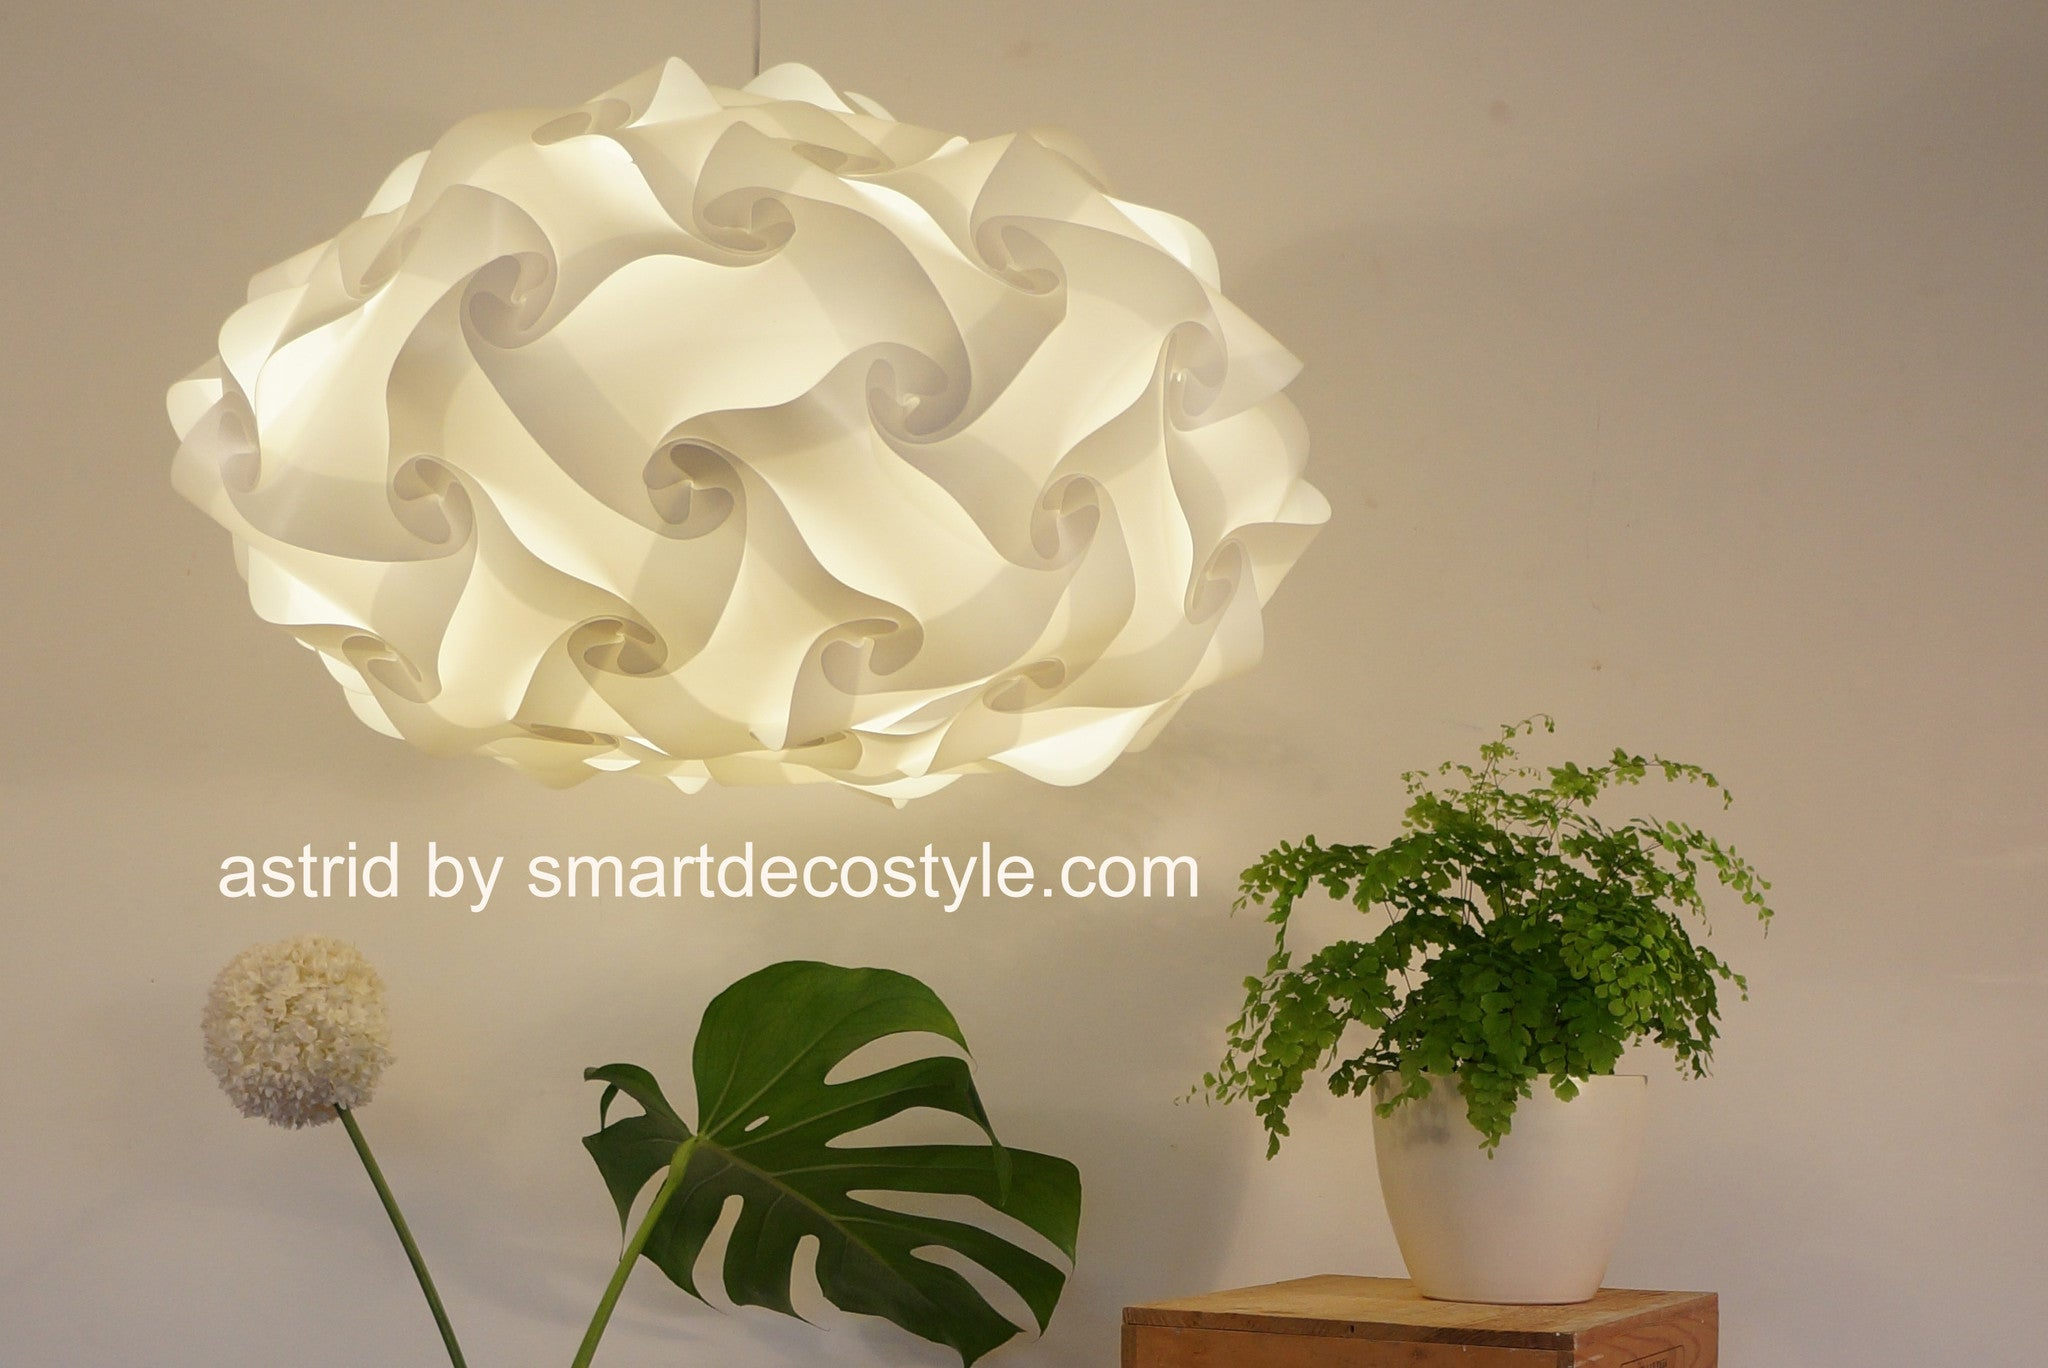 Smarty Lamps Astrid Light Shade  Smart Deco Homeware Lighting and Art by Jacqueline hammond